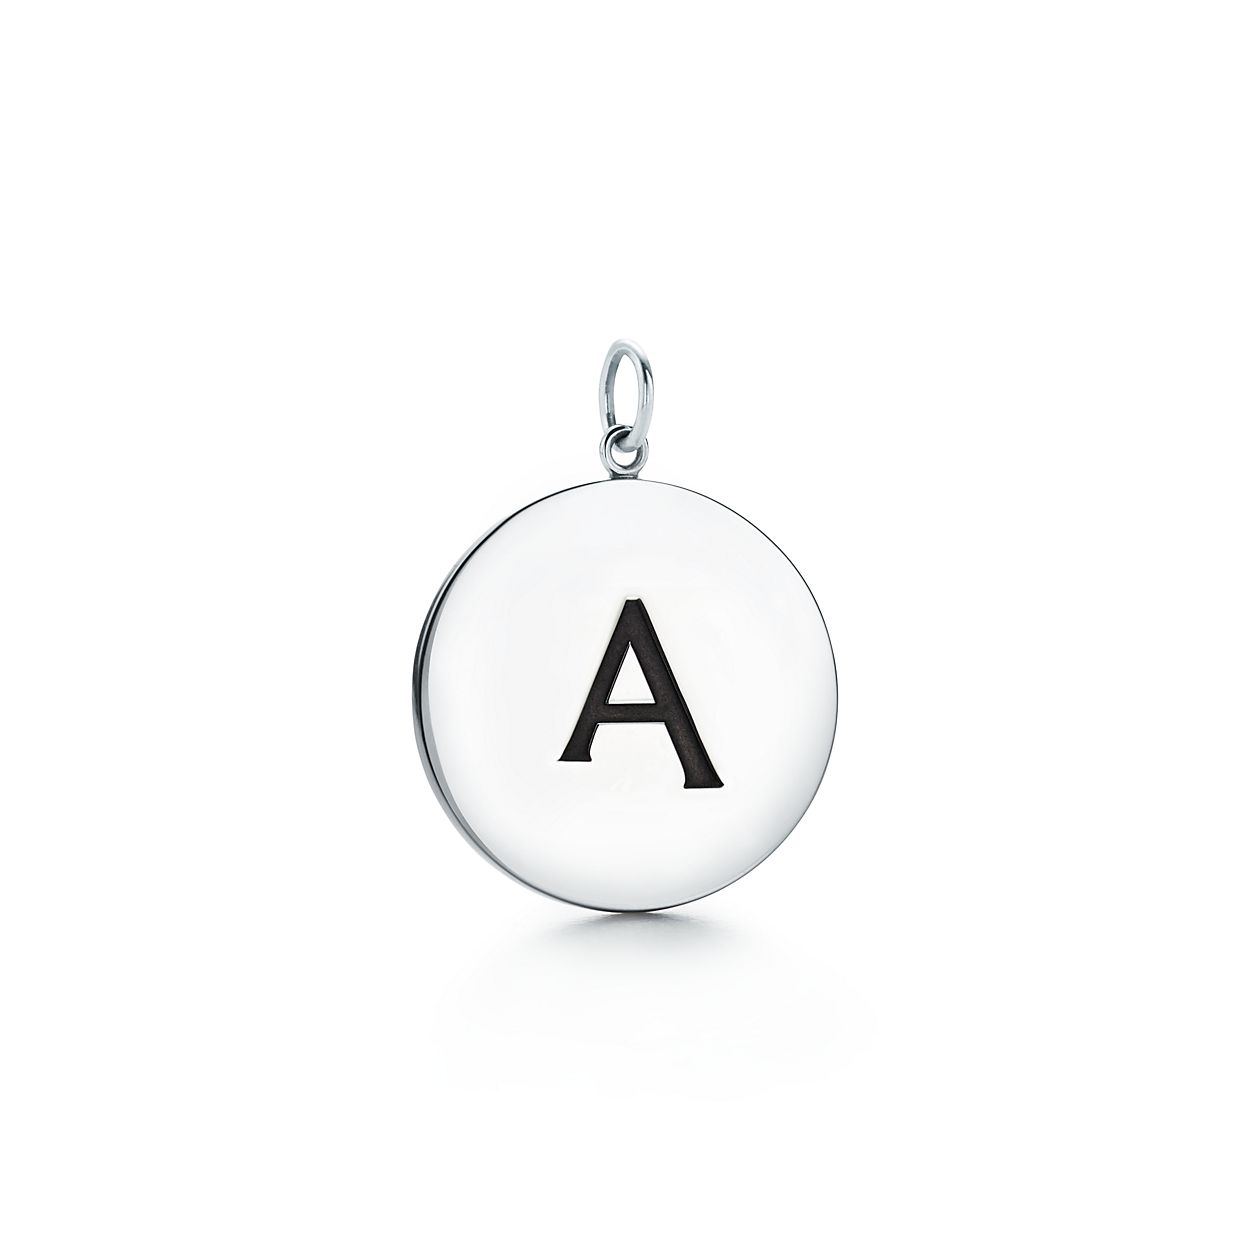 Tiffany Charms alphabet charm in sterling silver Letters A-Z available - Size Z Tiffany & Co. Ozk8dh2r